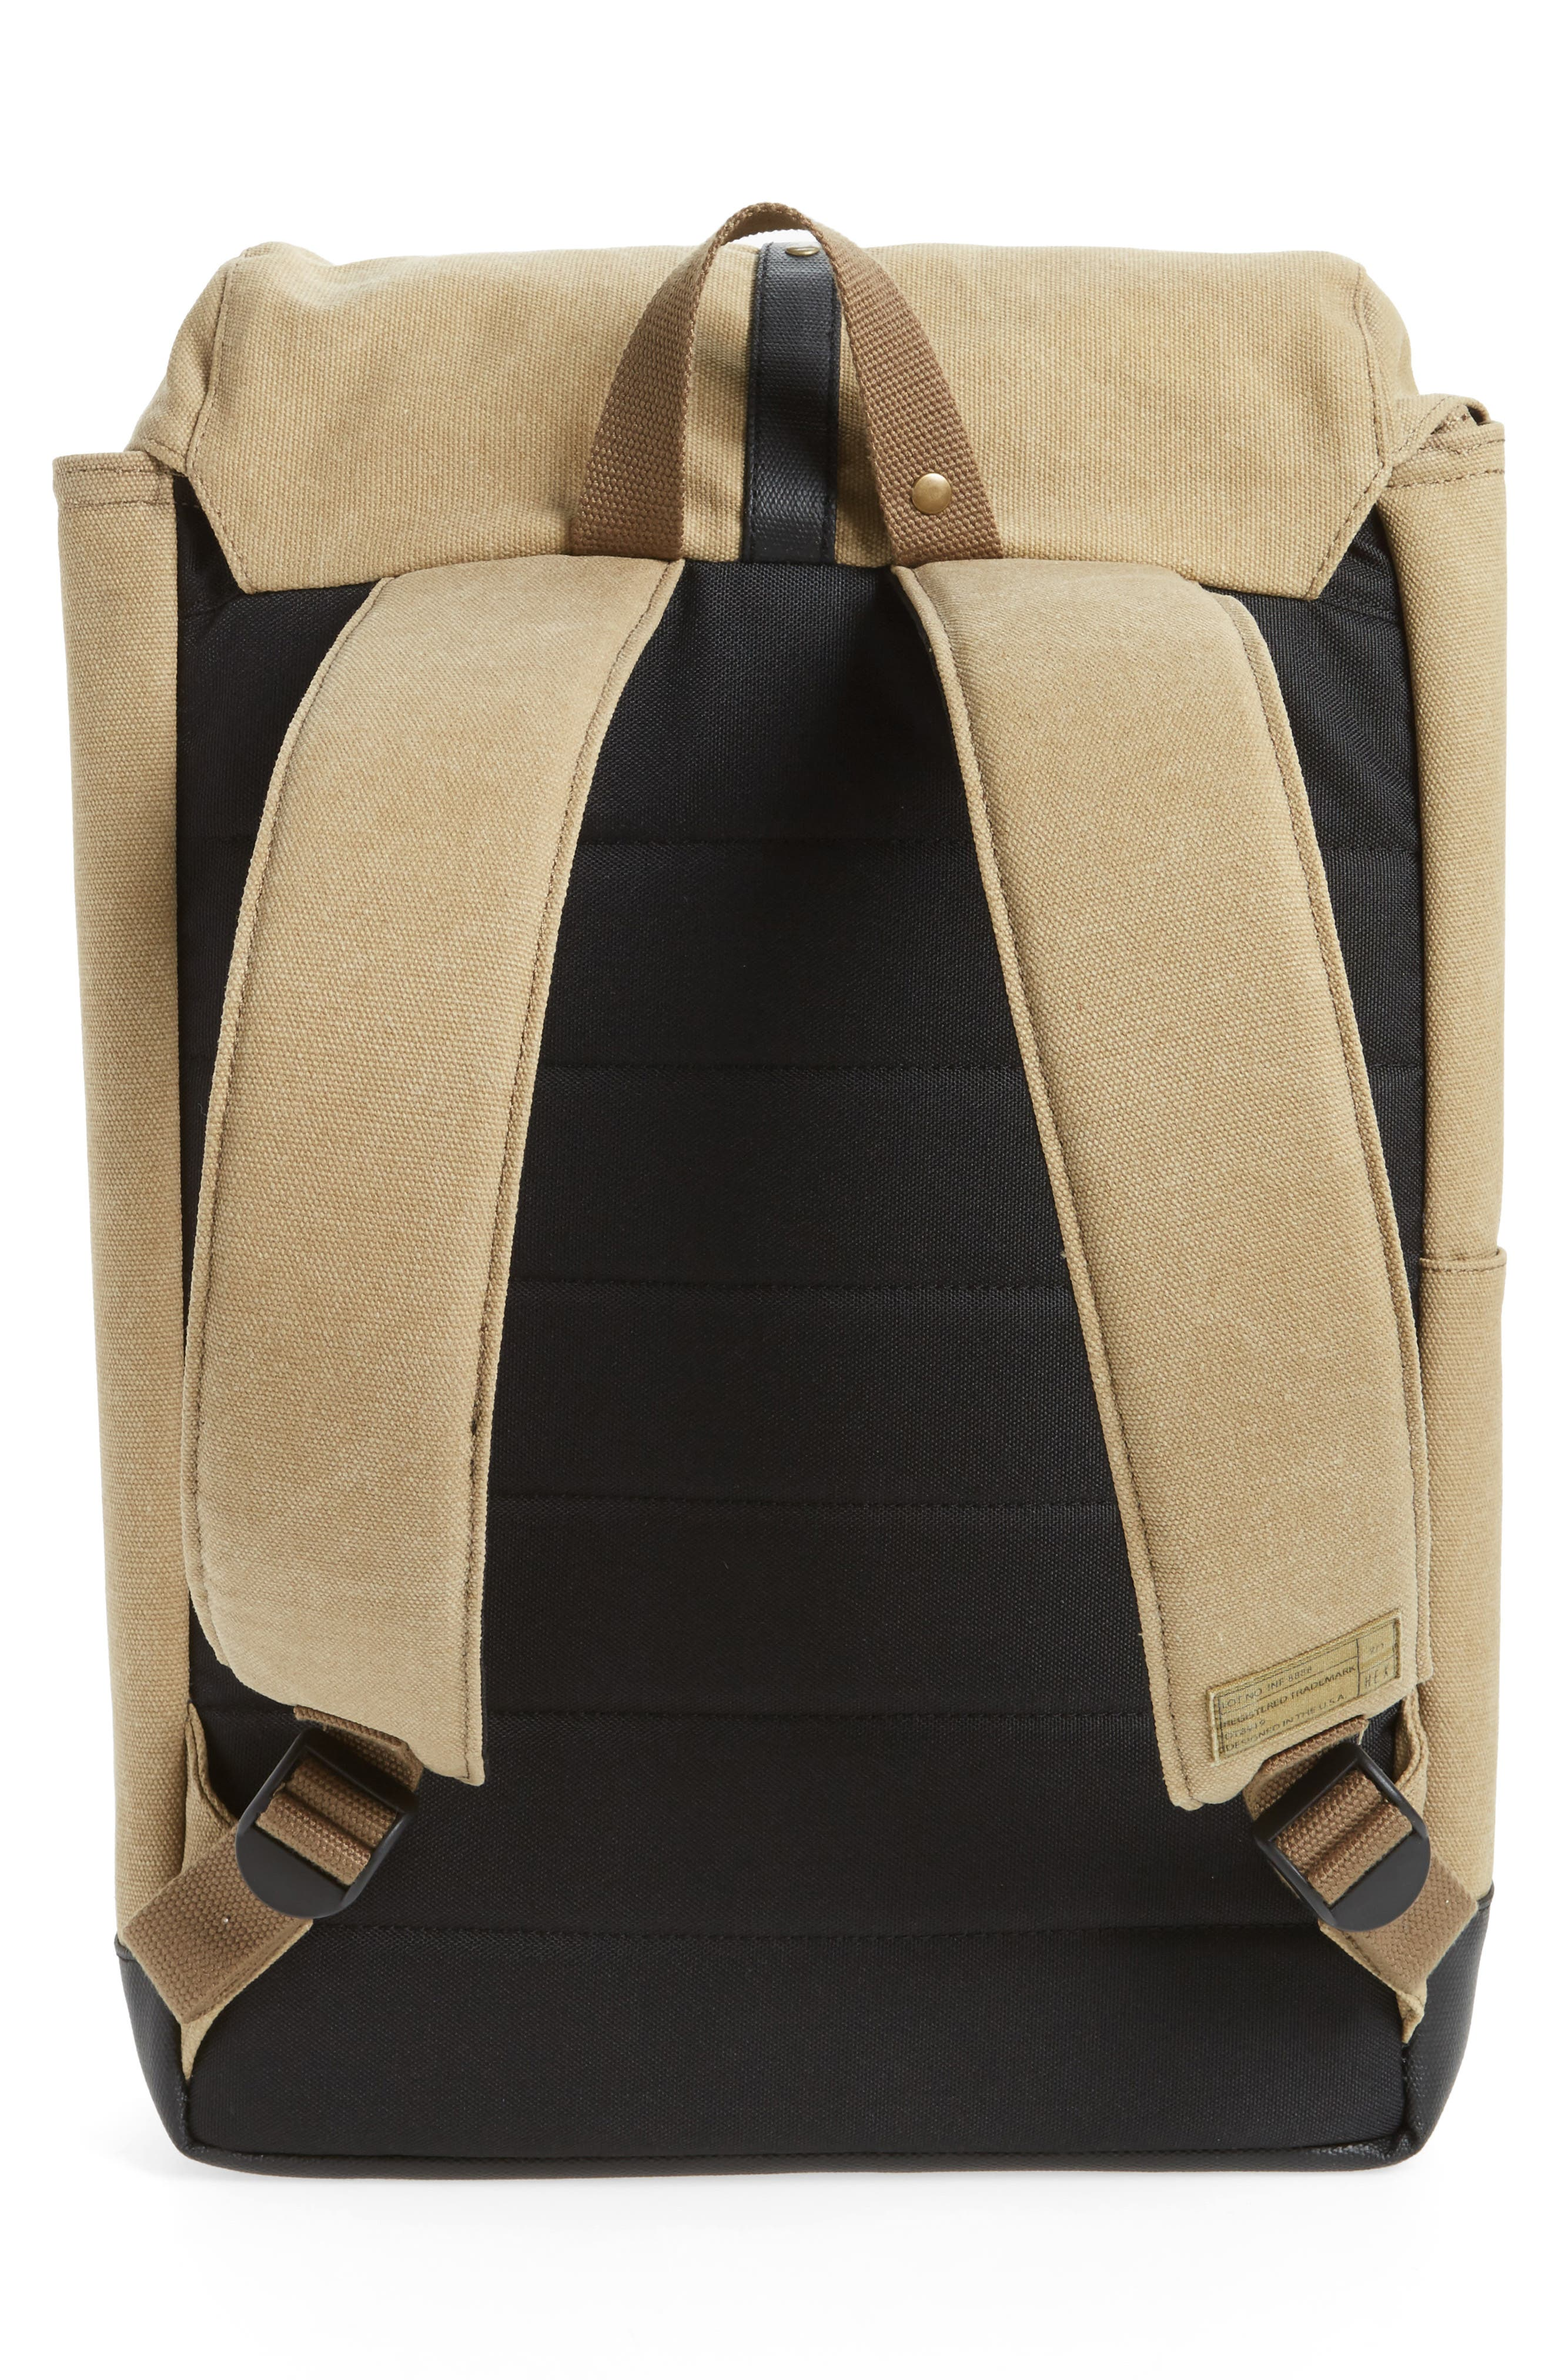 'Alliance' Water Resistant Backpack,                             Alternate thumbnail 3, color,                             265